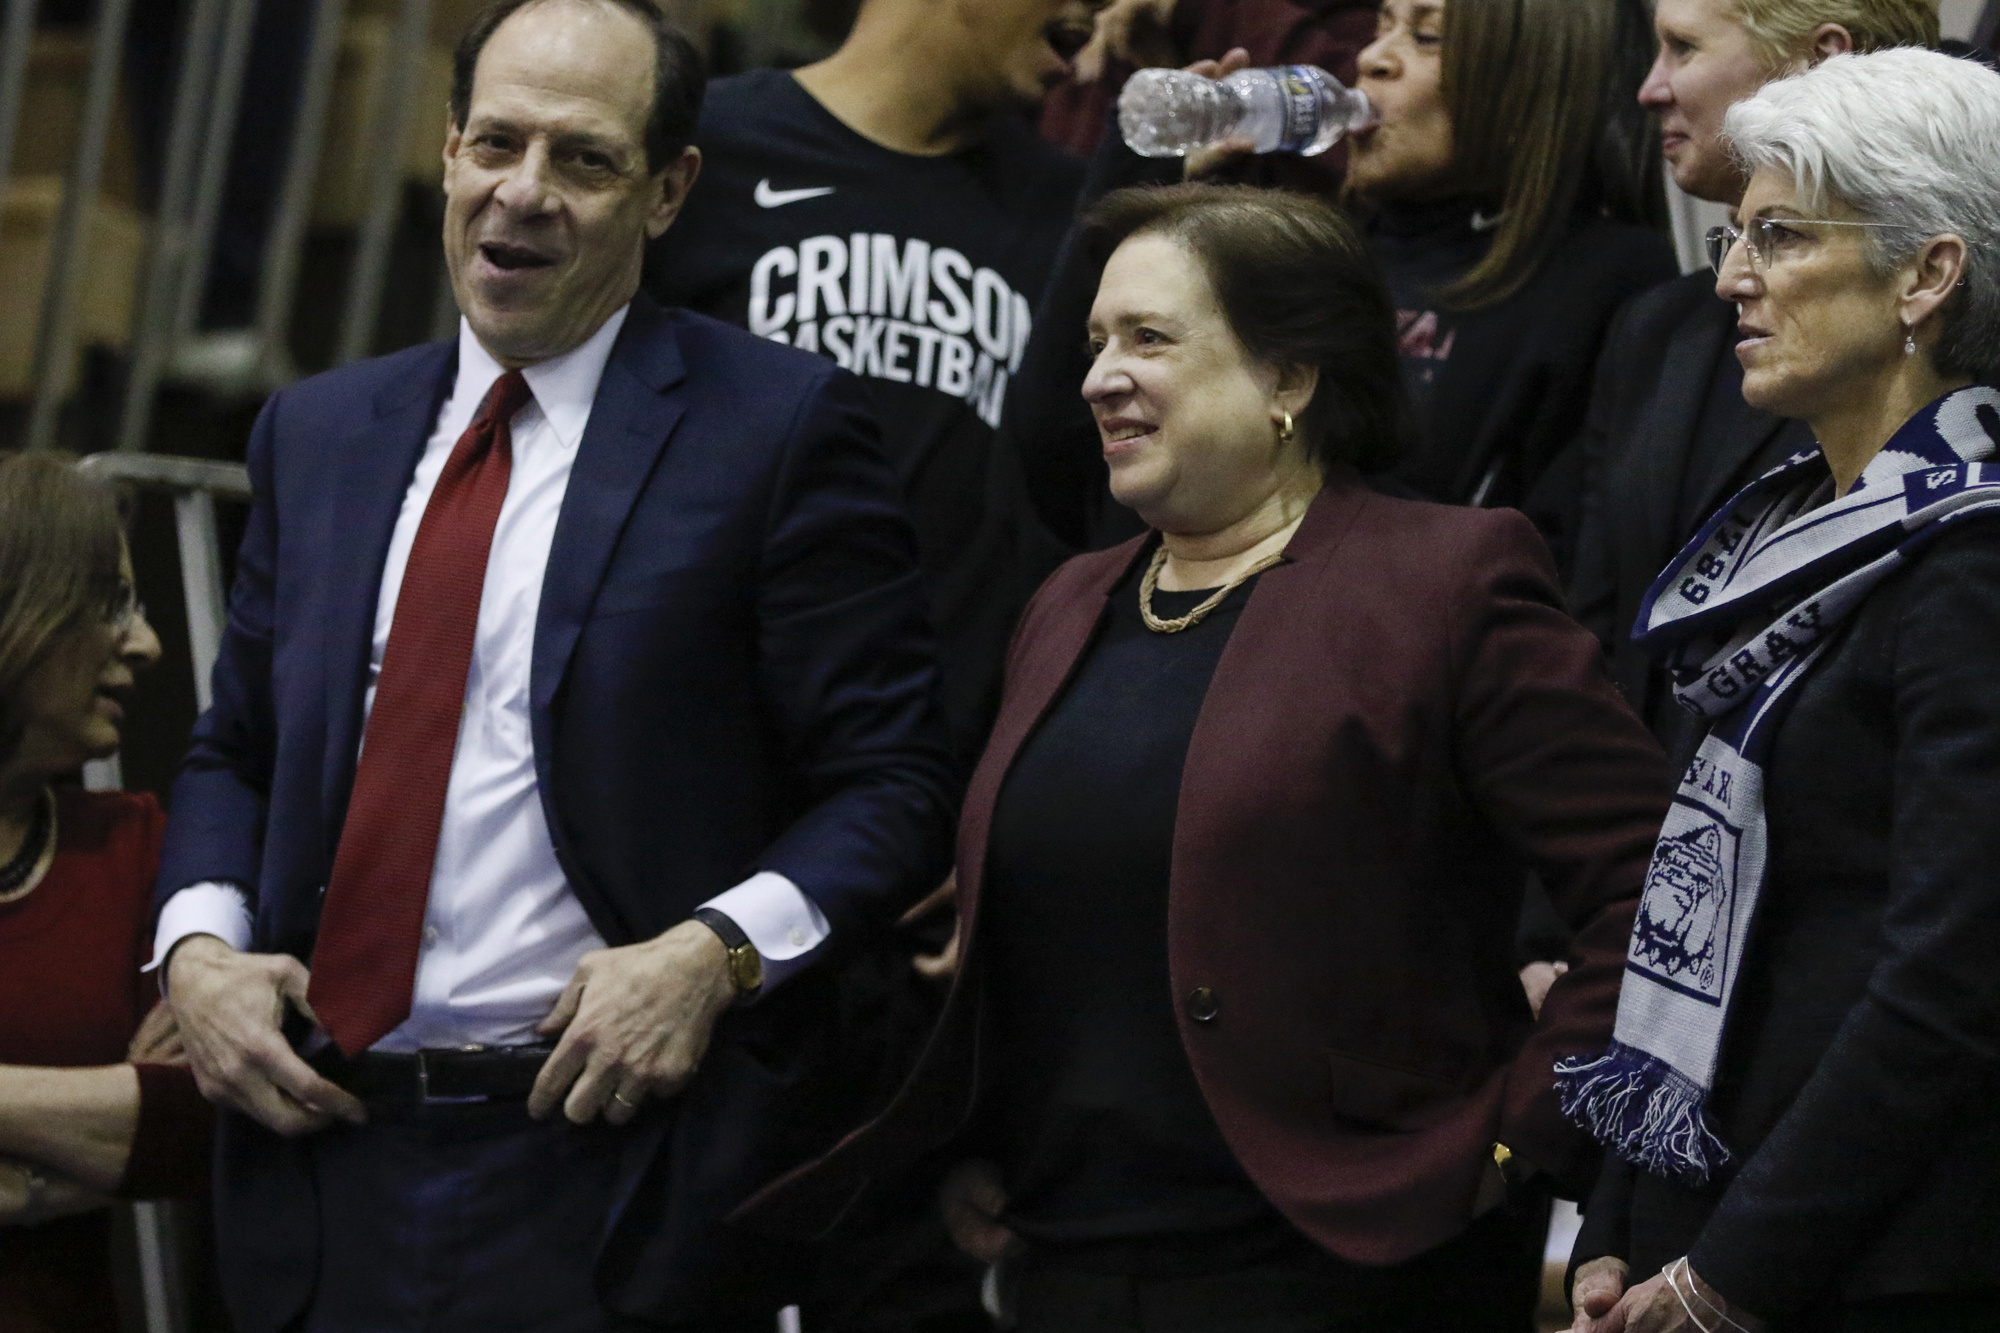 Supreme Court Justice Elena Kagan was in attendance at McDonough Arena on Wednesday night.